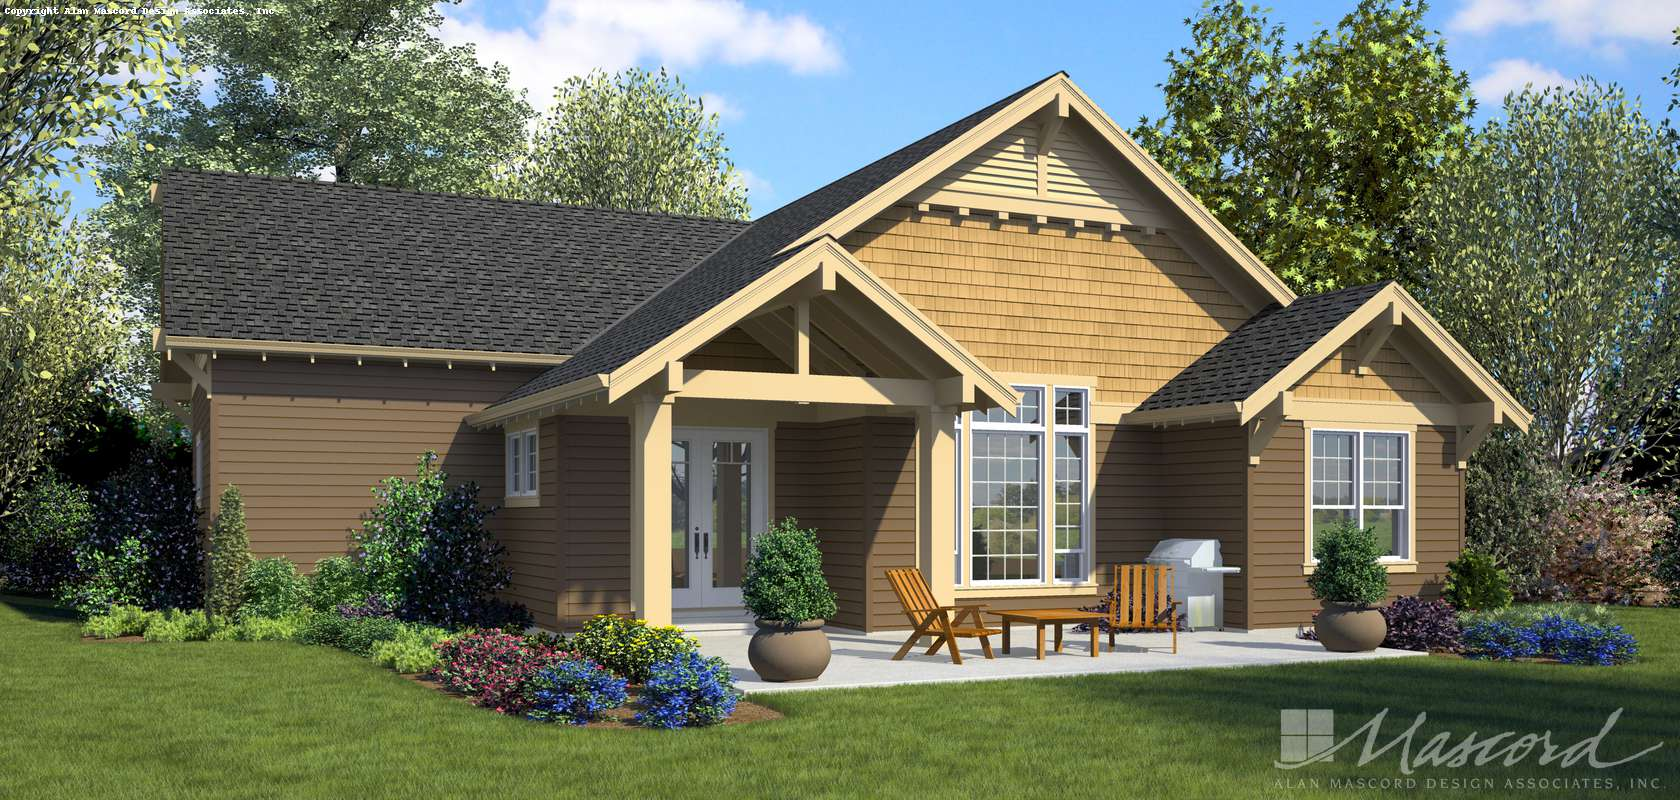 Mascord House Plan 1168C: The Cafe